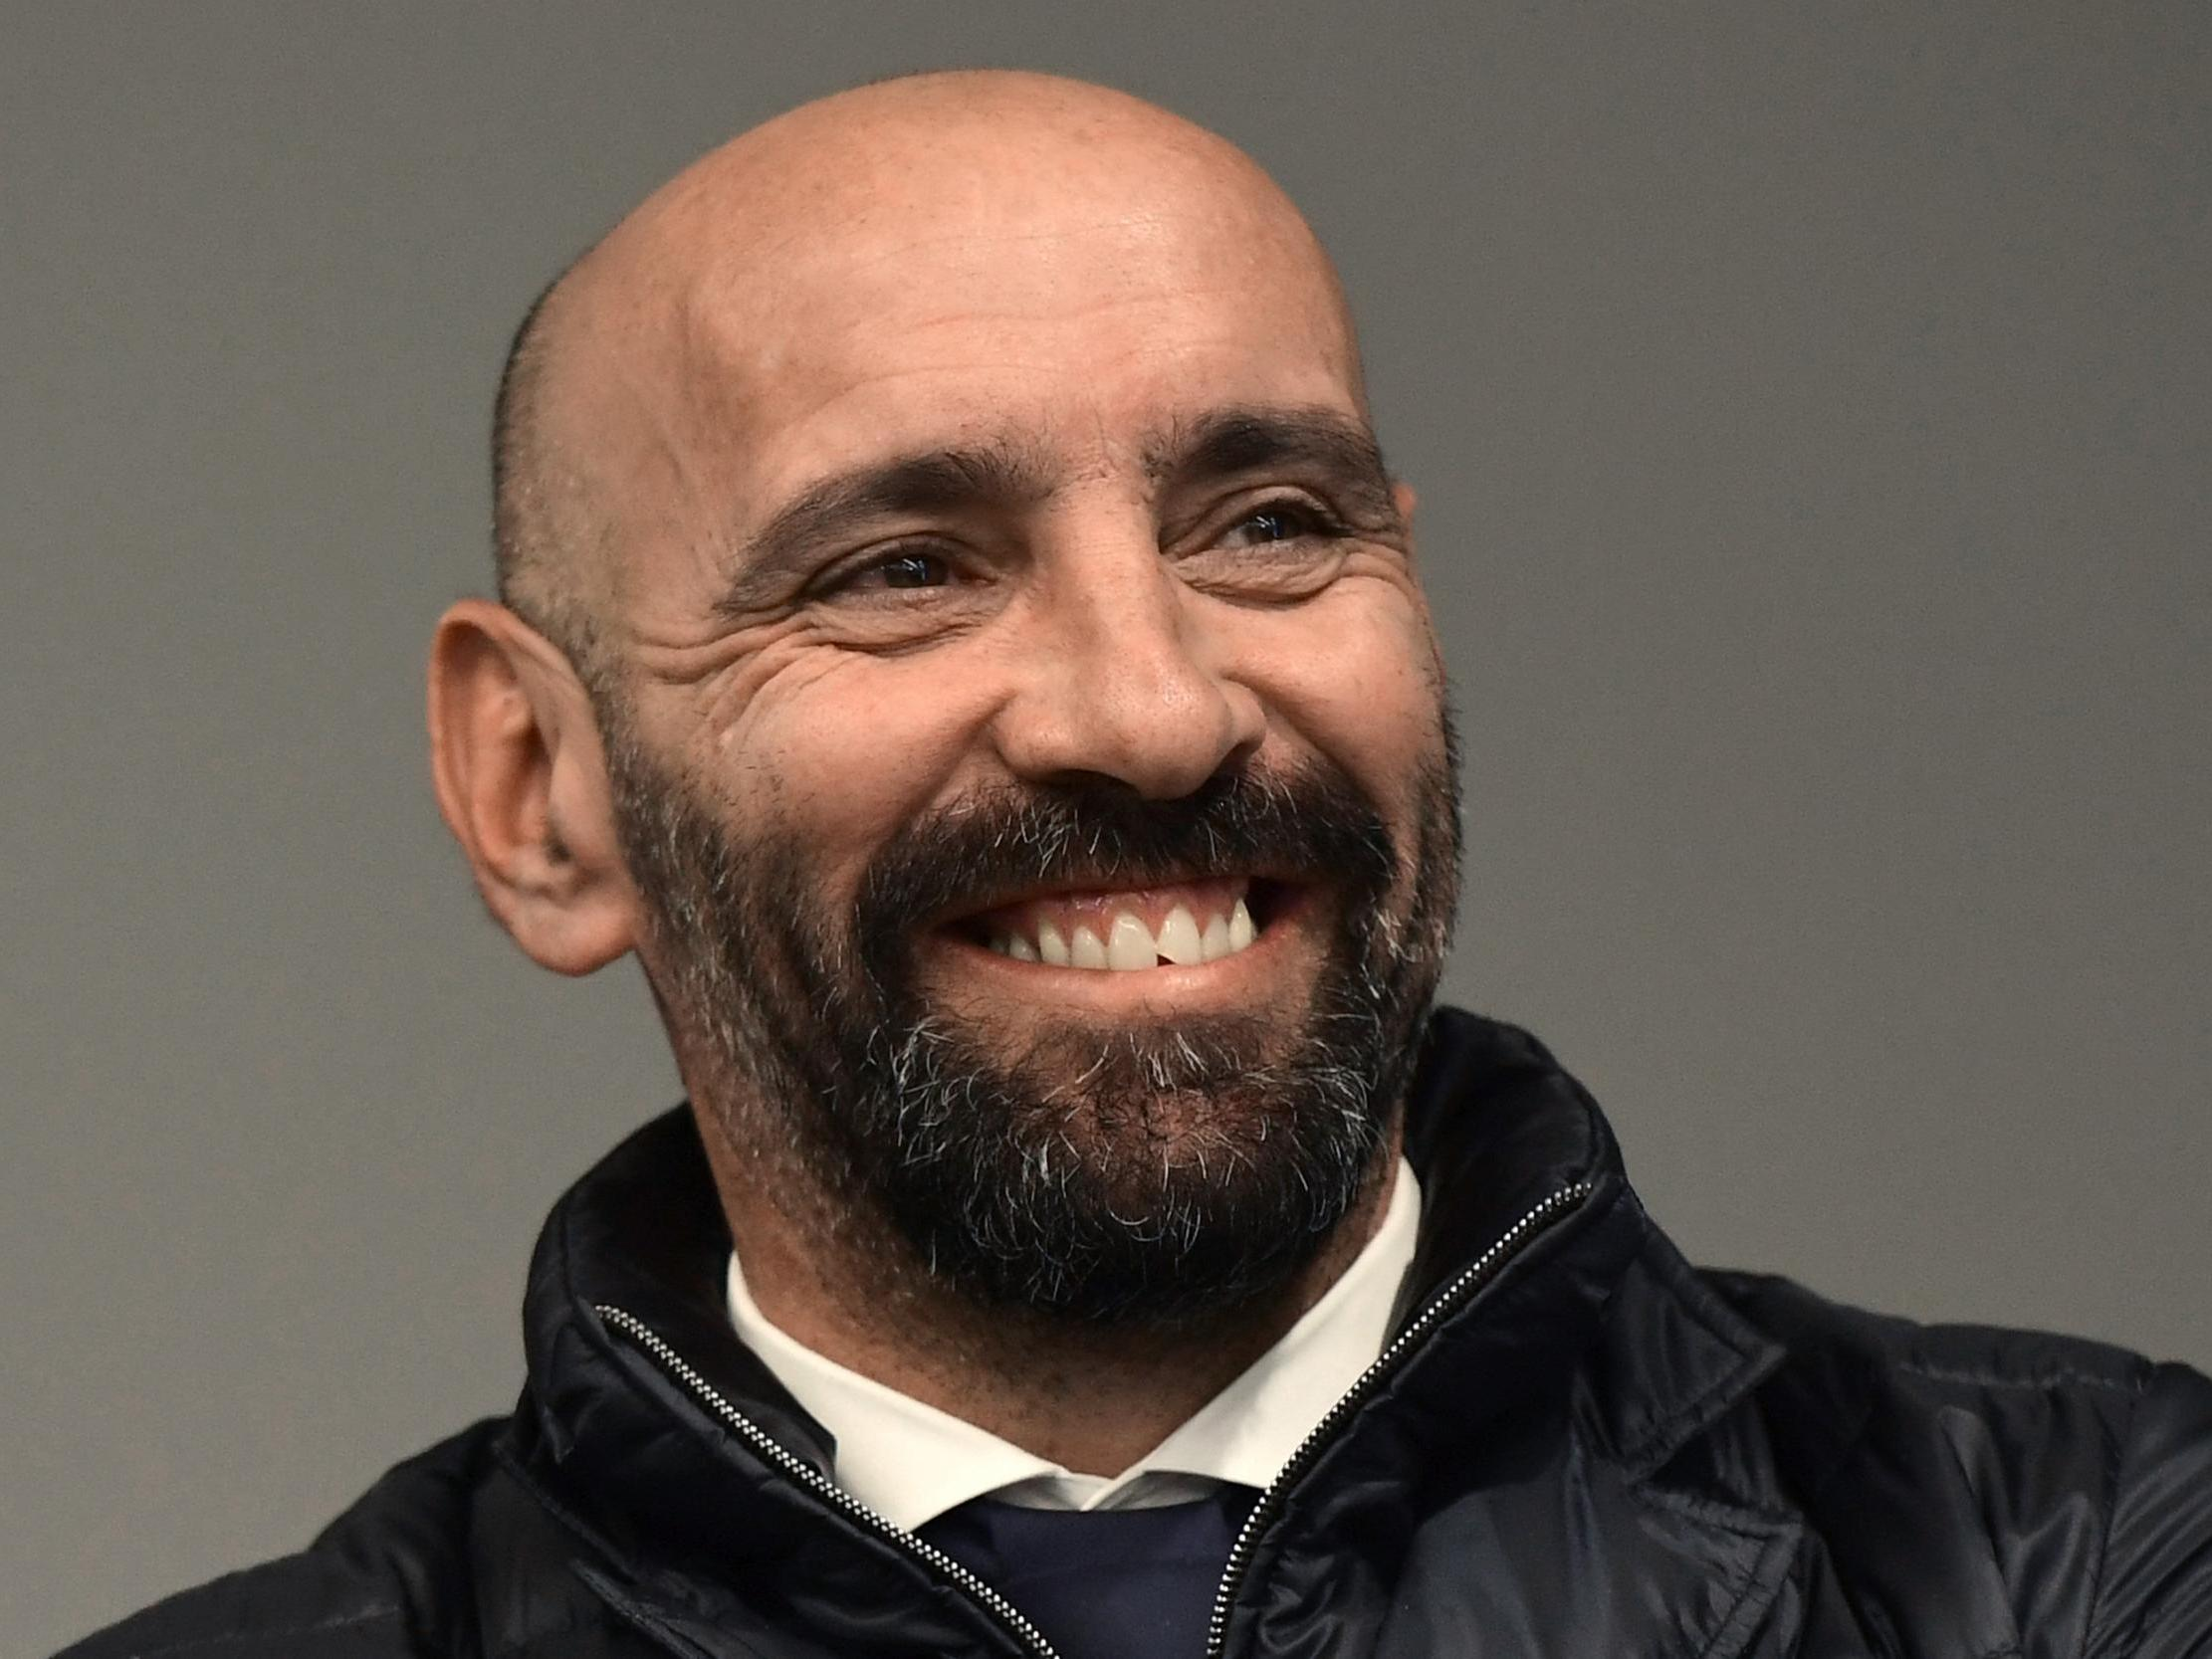 Arsenal transfer news: Gunners growing confident over deal to appoint Monchi as new technical director